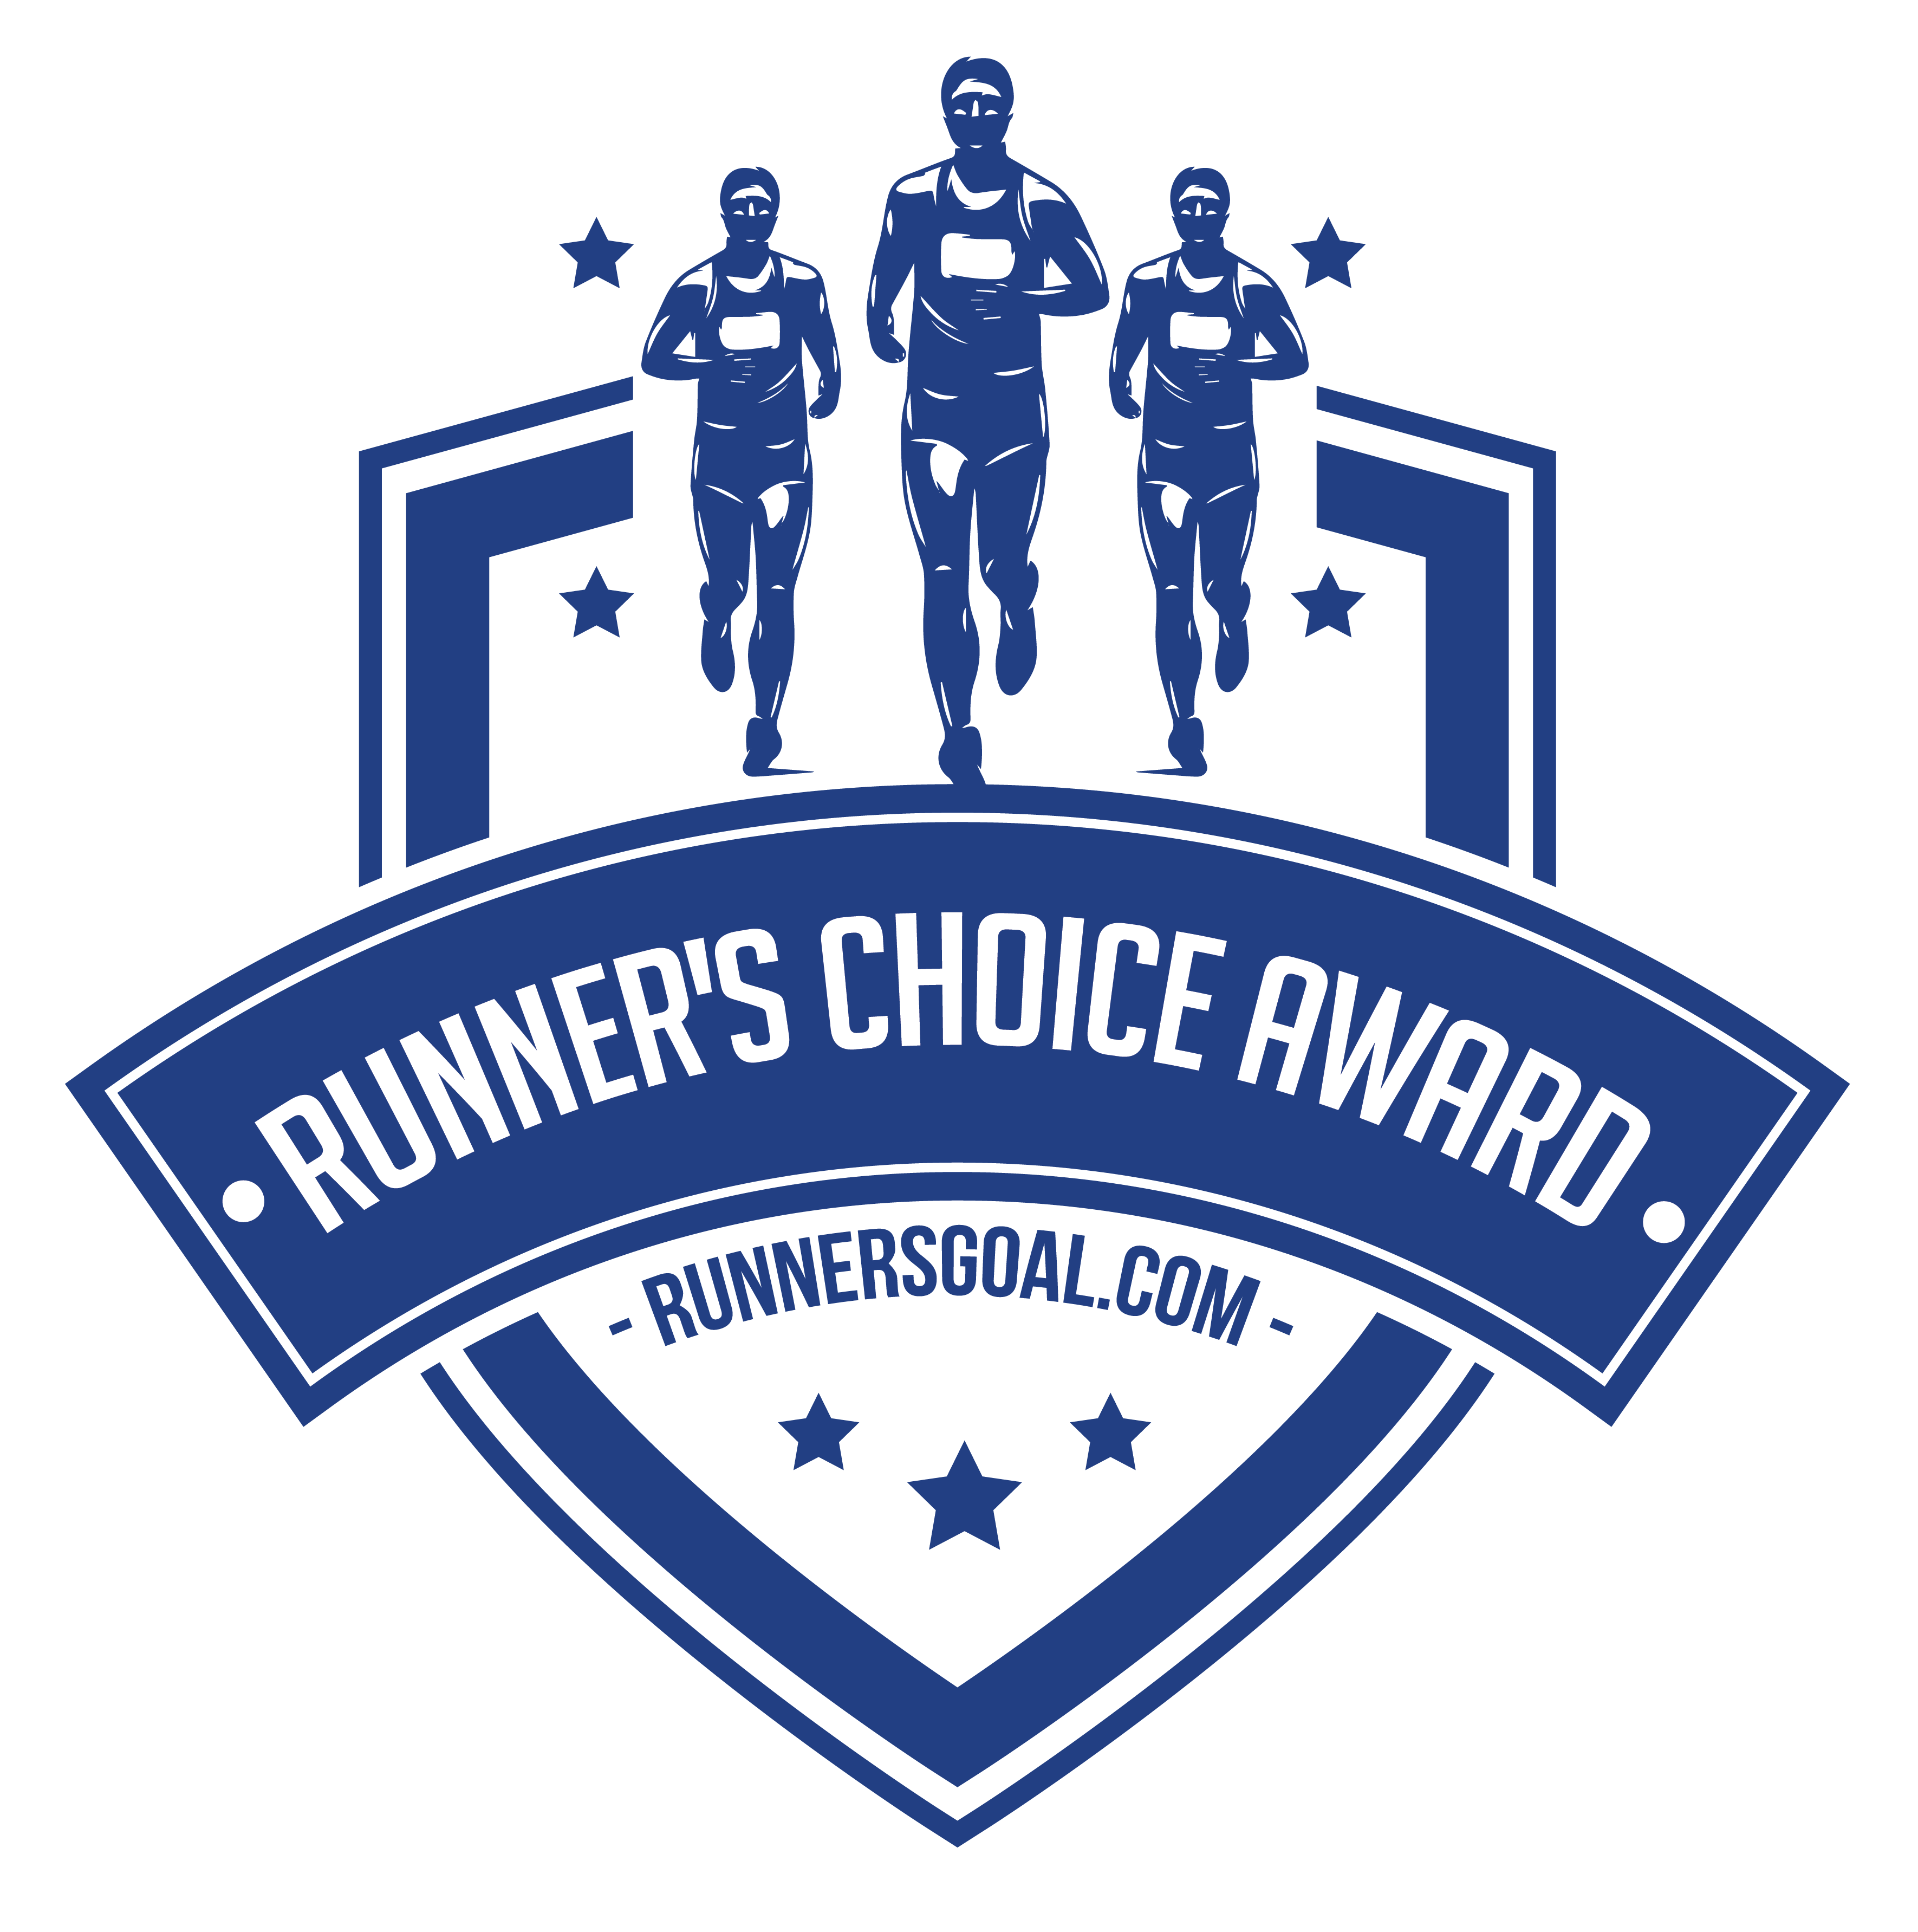 Runner's Choice Award - Best Marathons and Half-Marathons